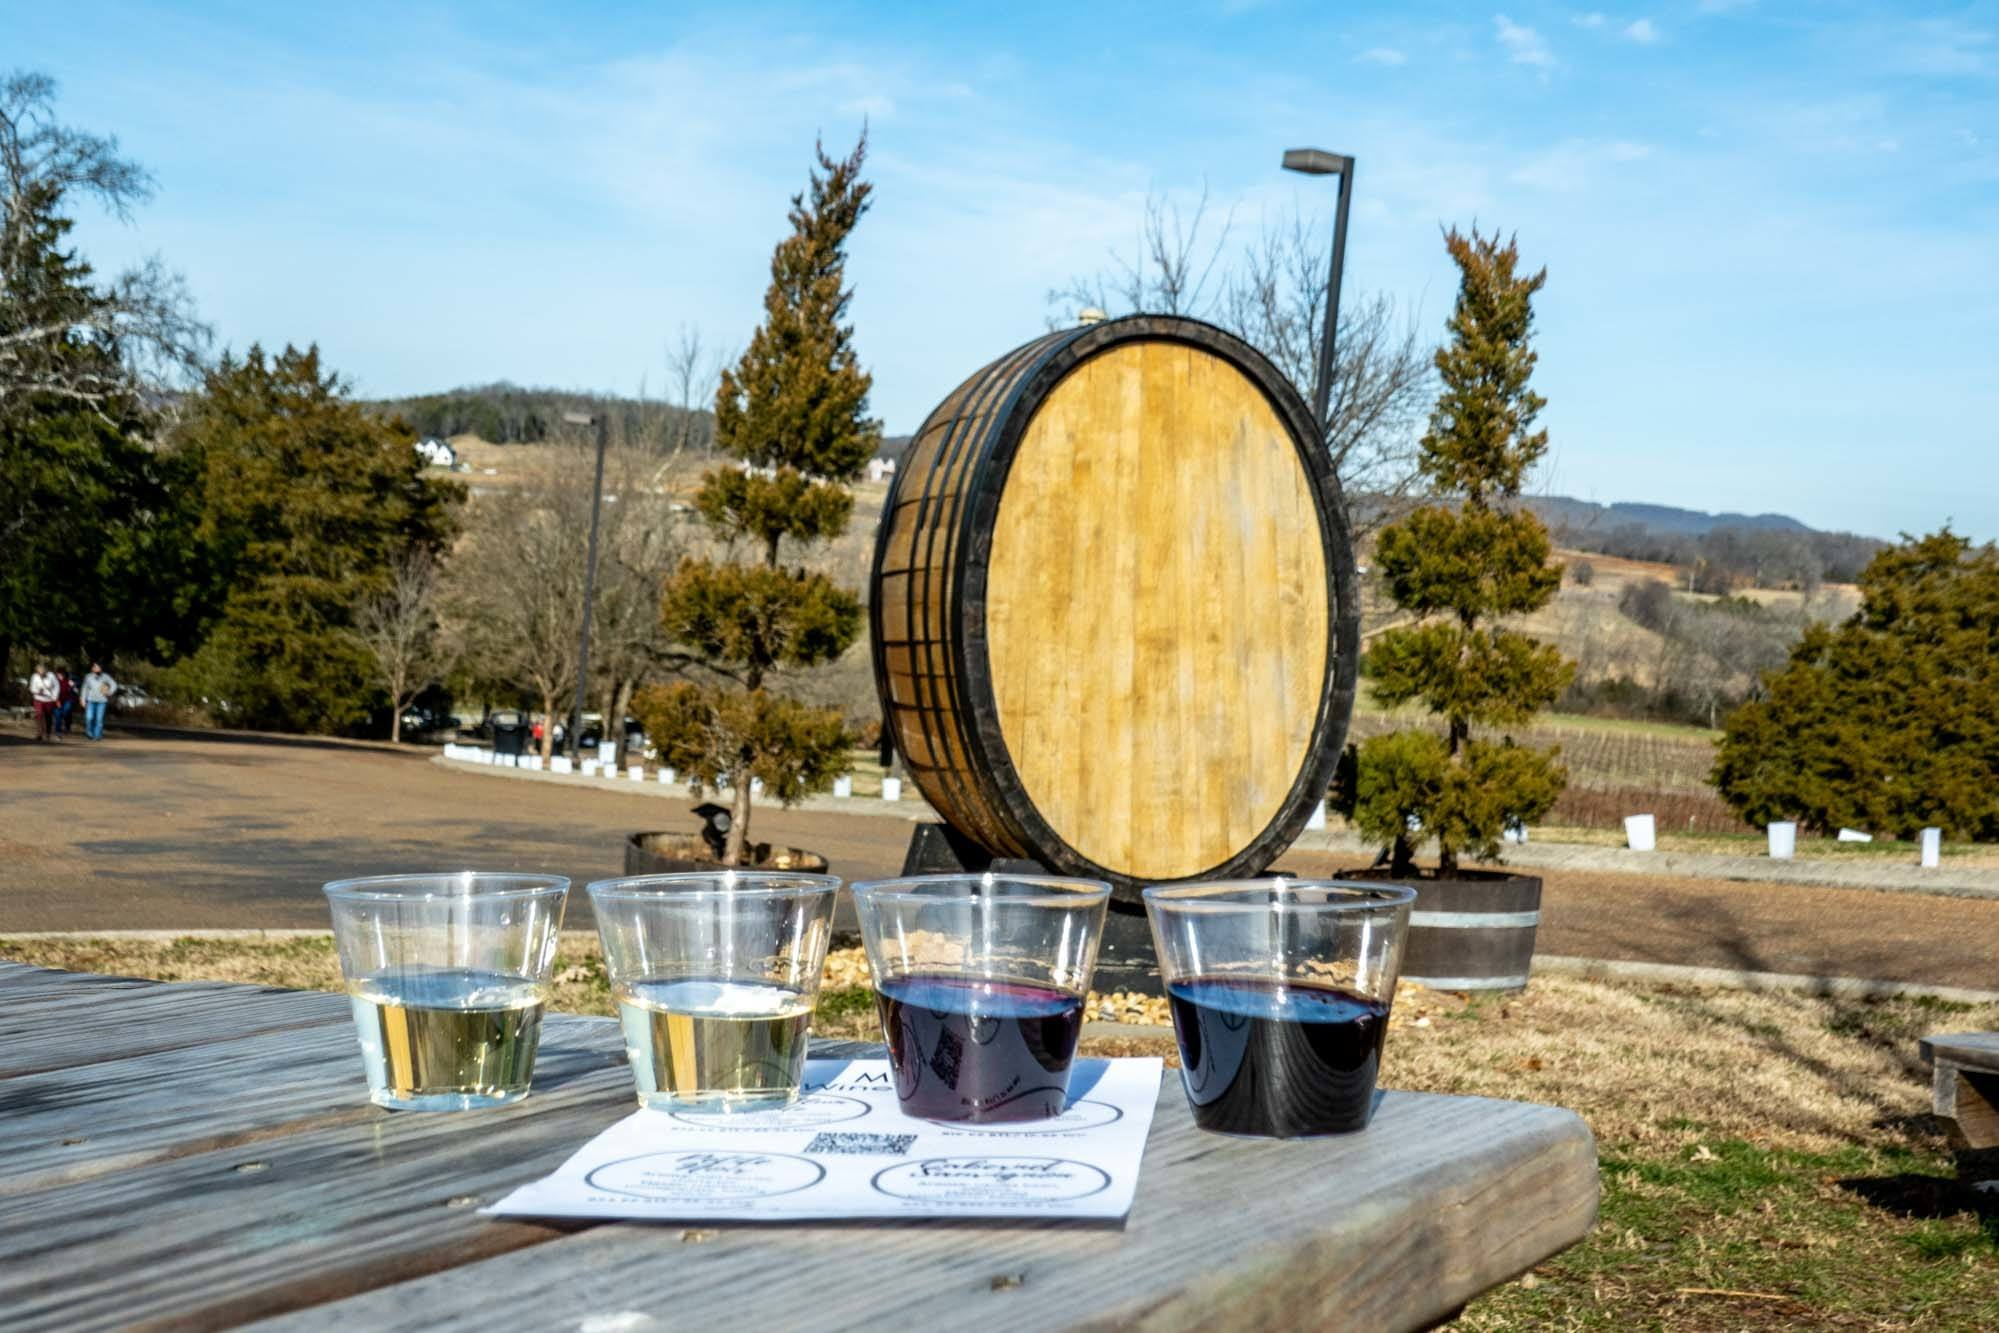 Wine tasting flight on a picnic table beside a large wooden barrel